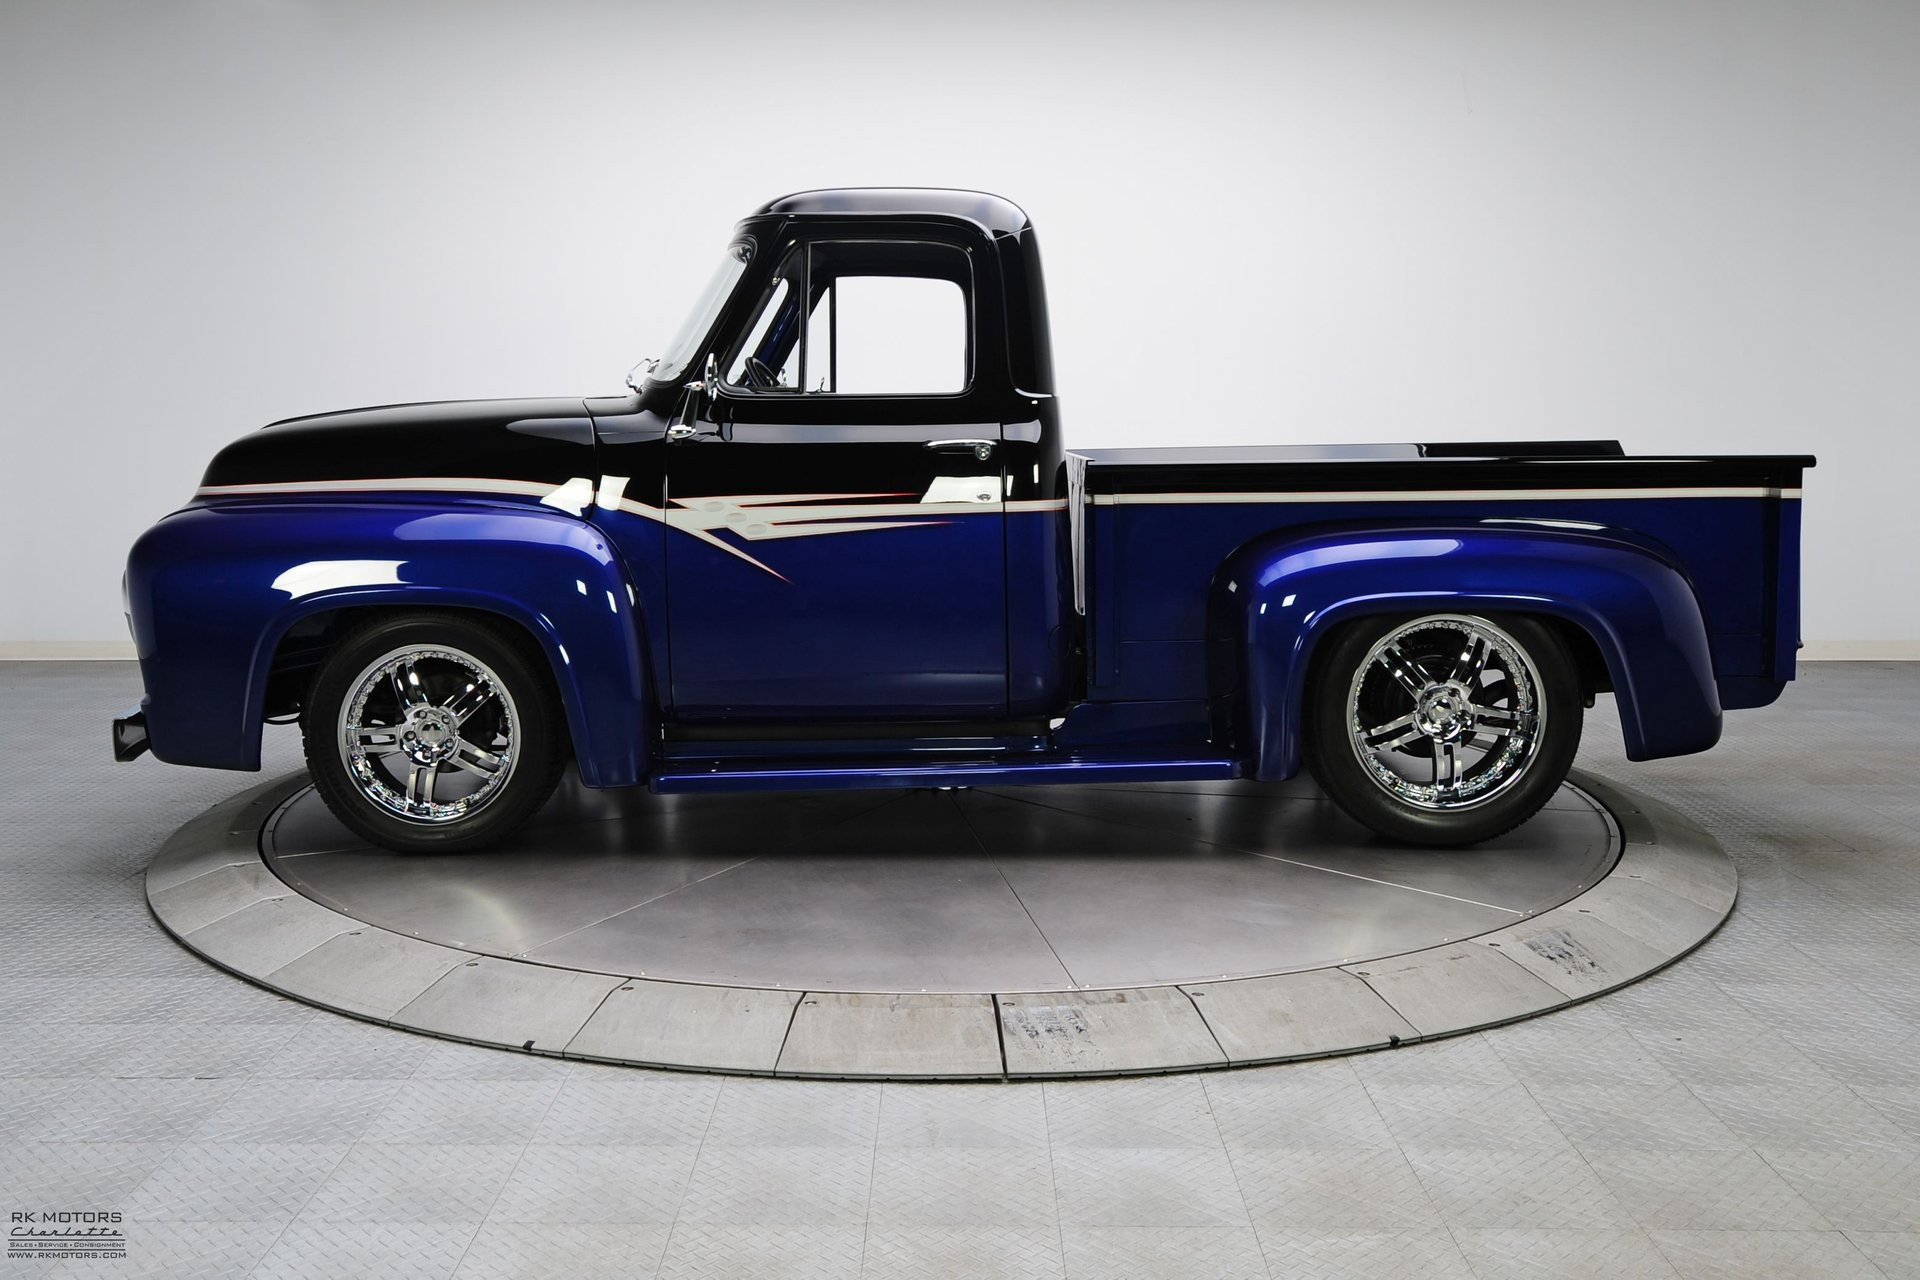 132949 1955 Ford F100 Rk Motors Classic Cars For Sale Paint